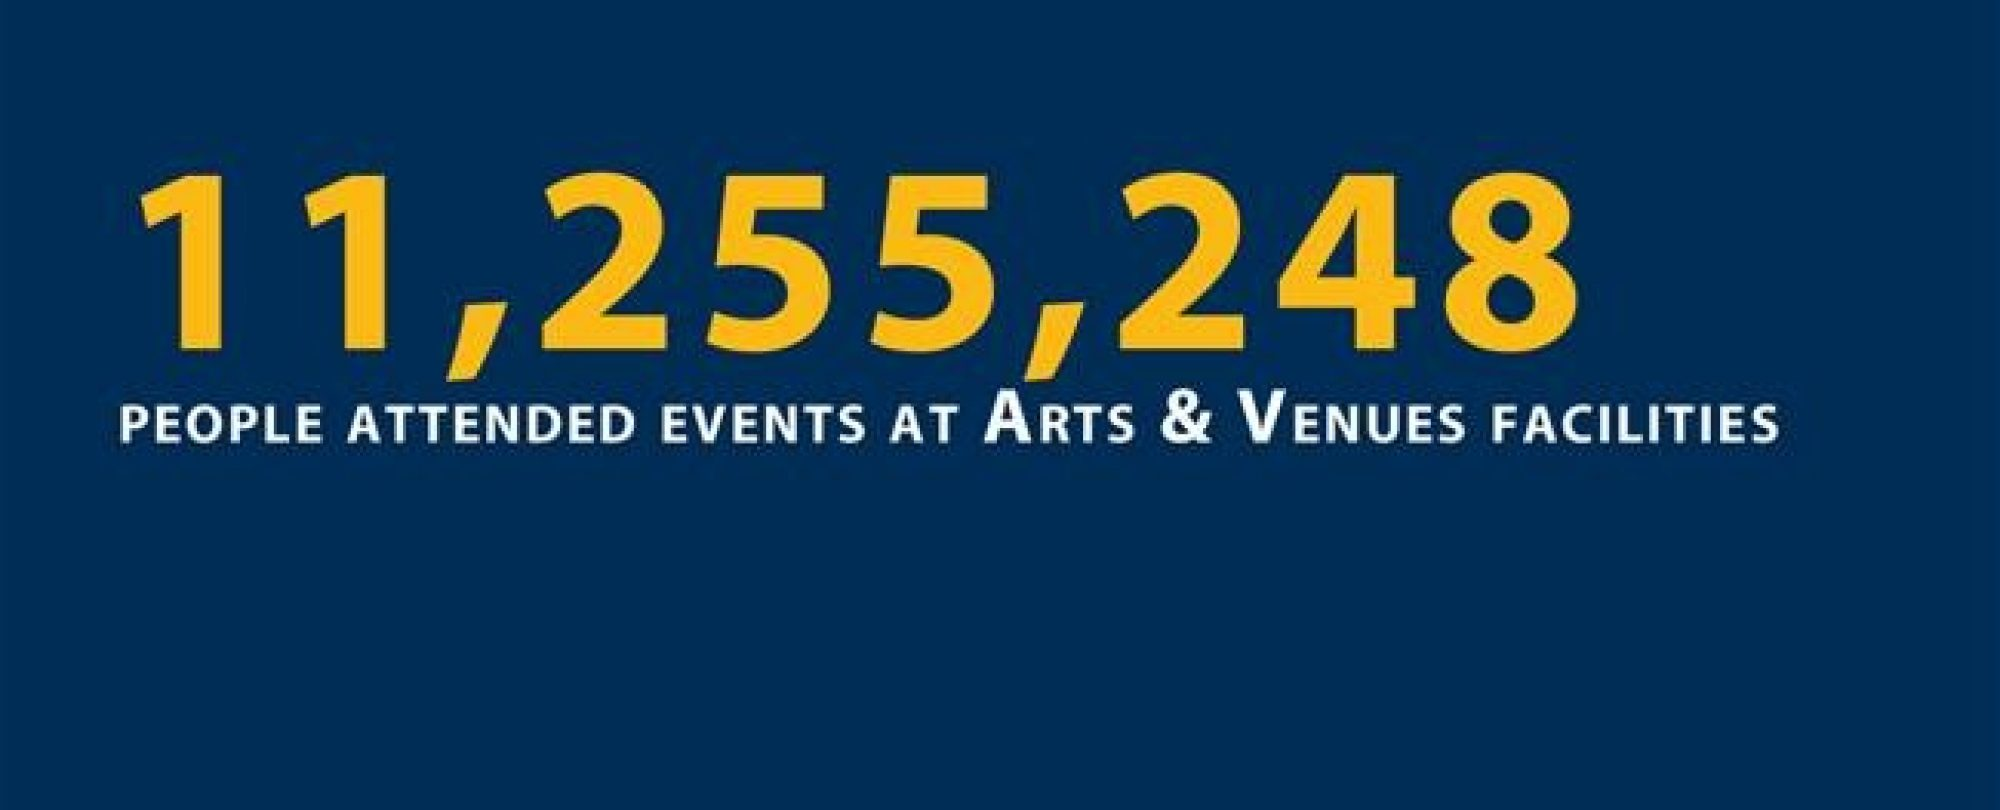 11,255,248 people attended events at Arts and Venues facilities.